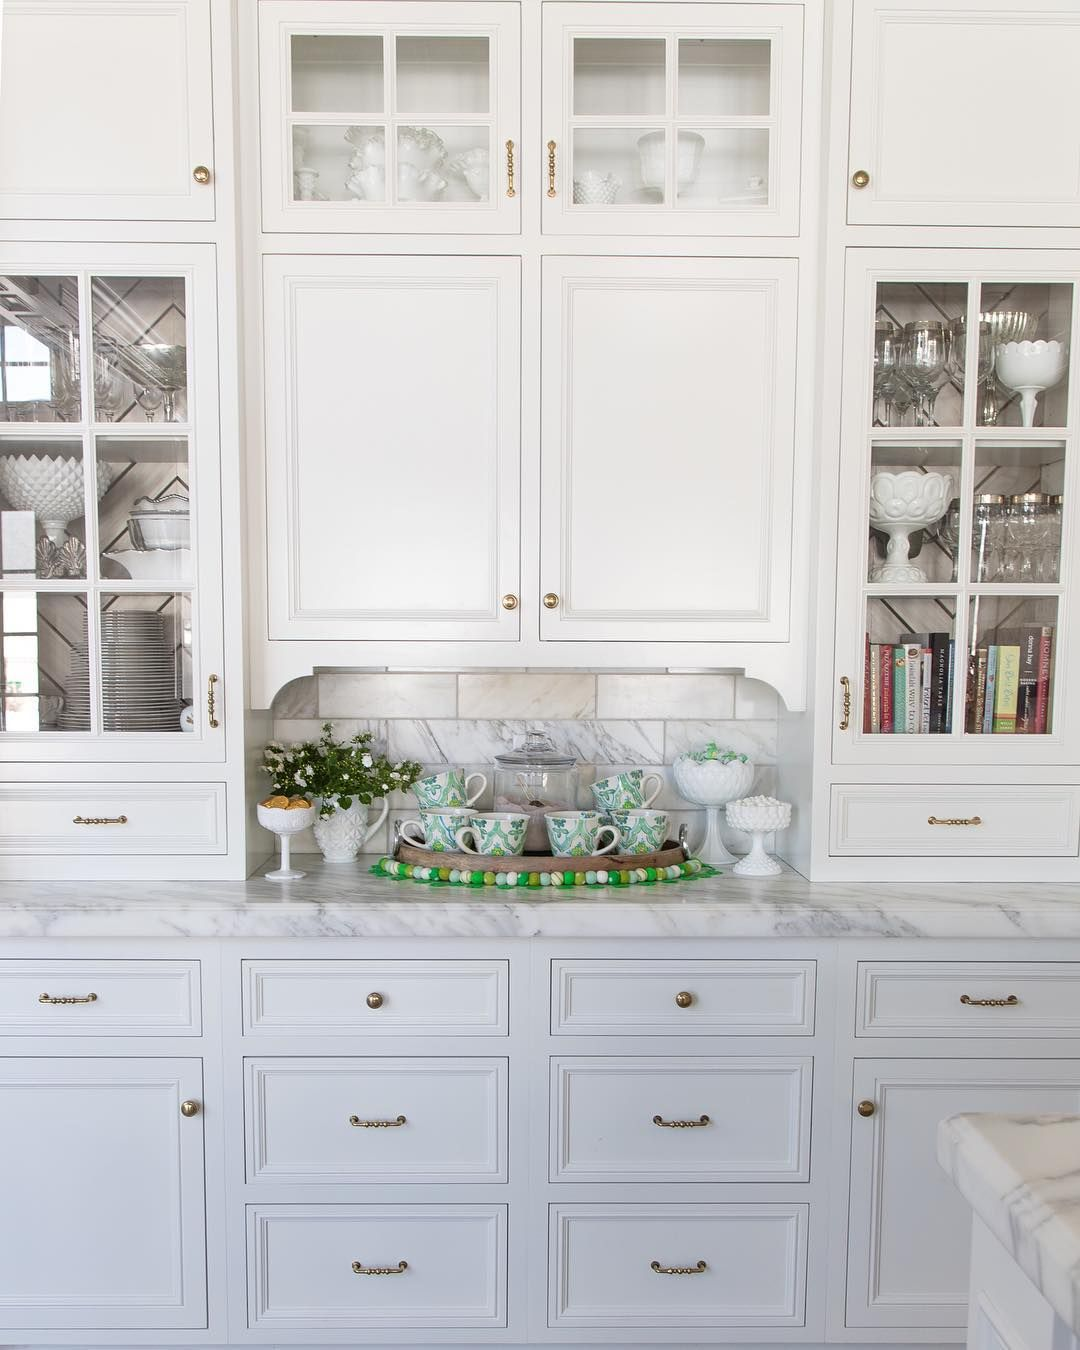 Hollyj On Instagram I Love This Little Nook In Our Kitchen It S Perfect For A Hot Cocoa Bar And With Saint Patrick S Day Coming Up I Ad Spring Decor